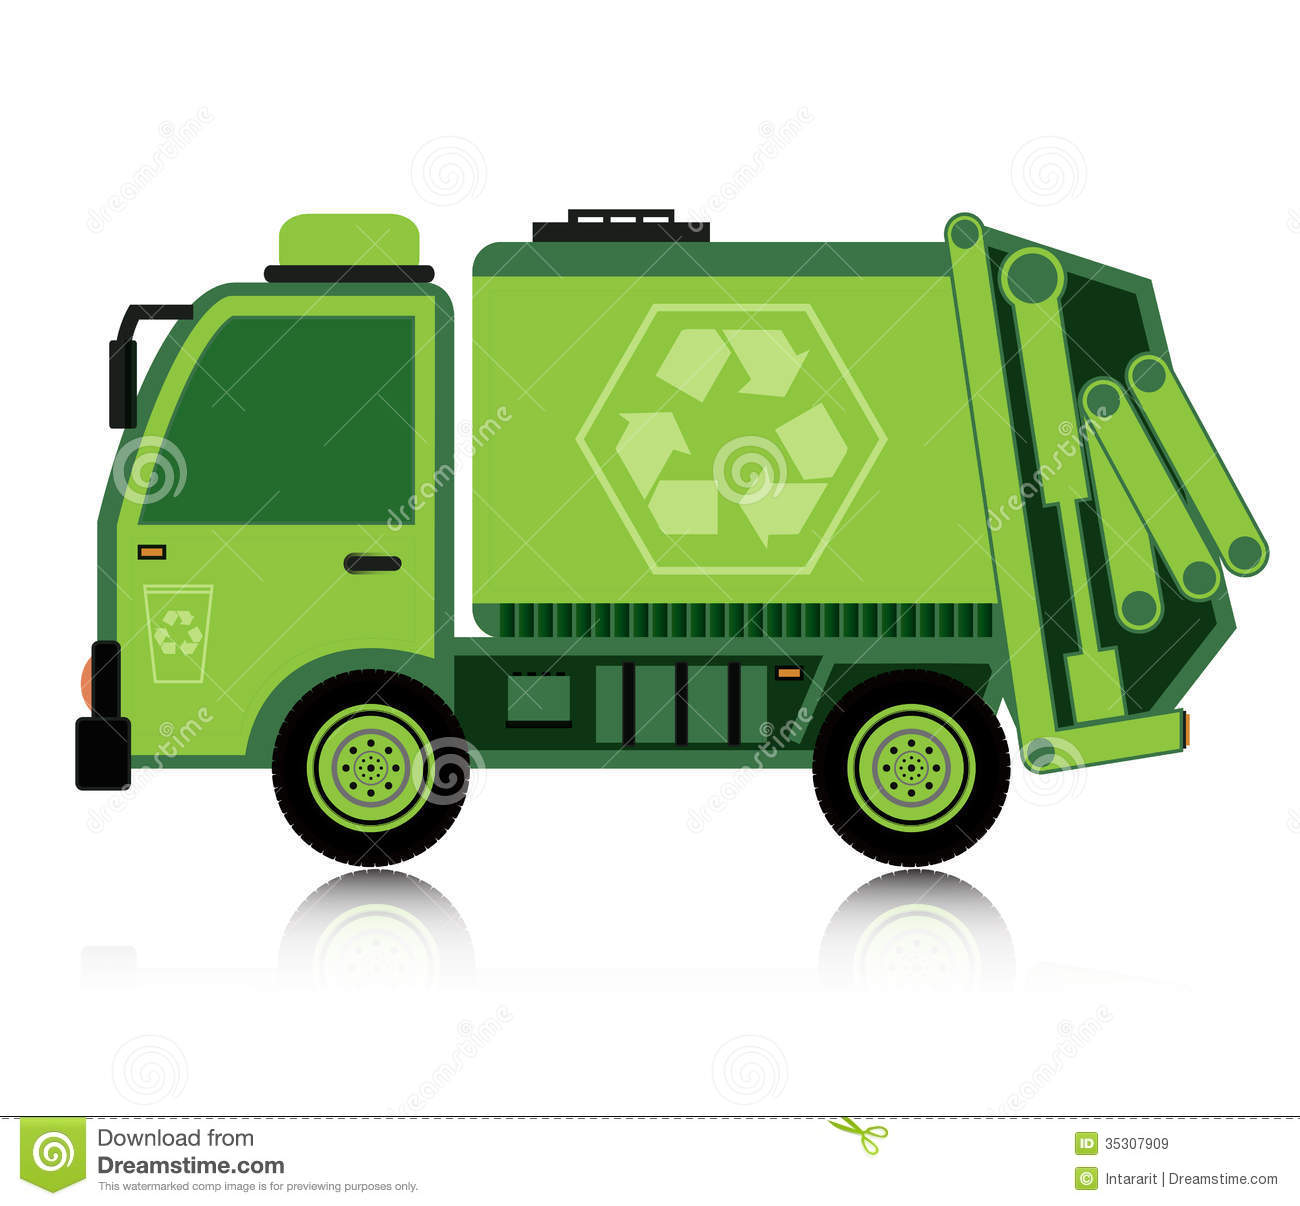 Green Truck Clipart Free Trash truck clipart - clipart kid Pick Up ...